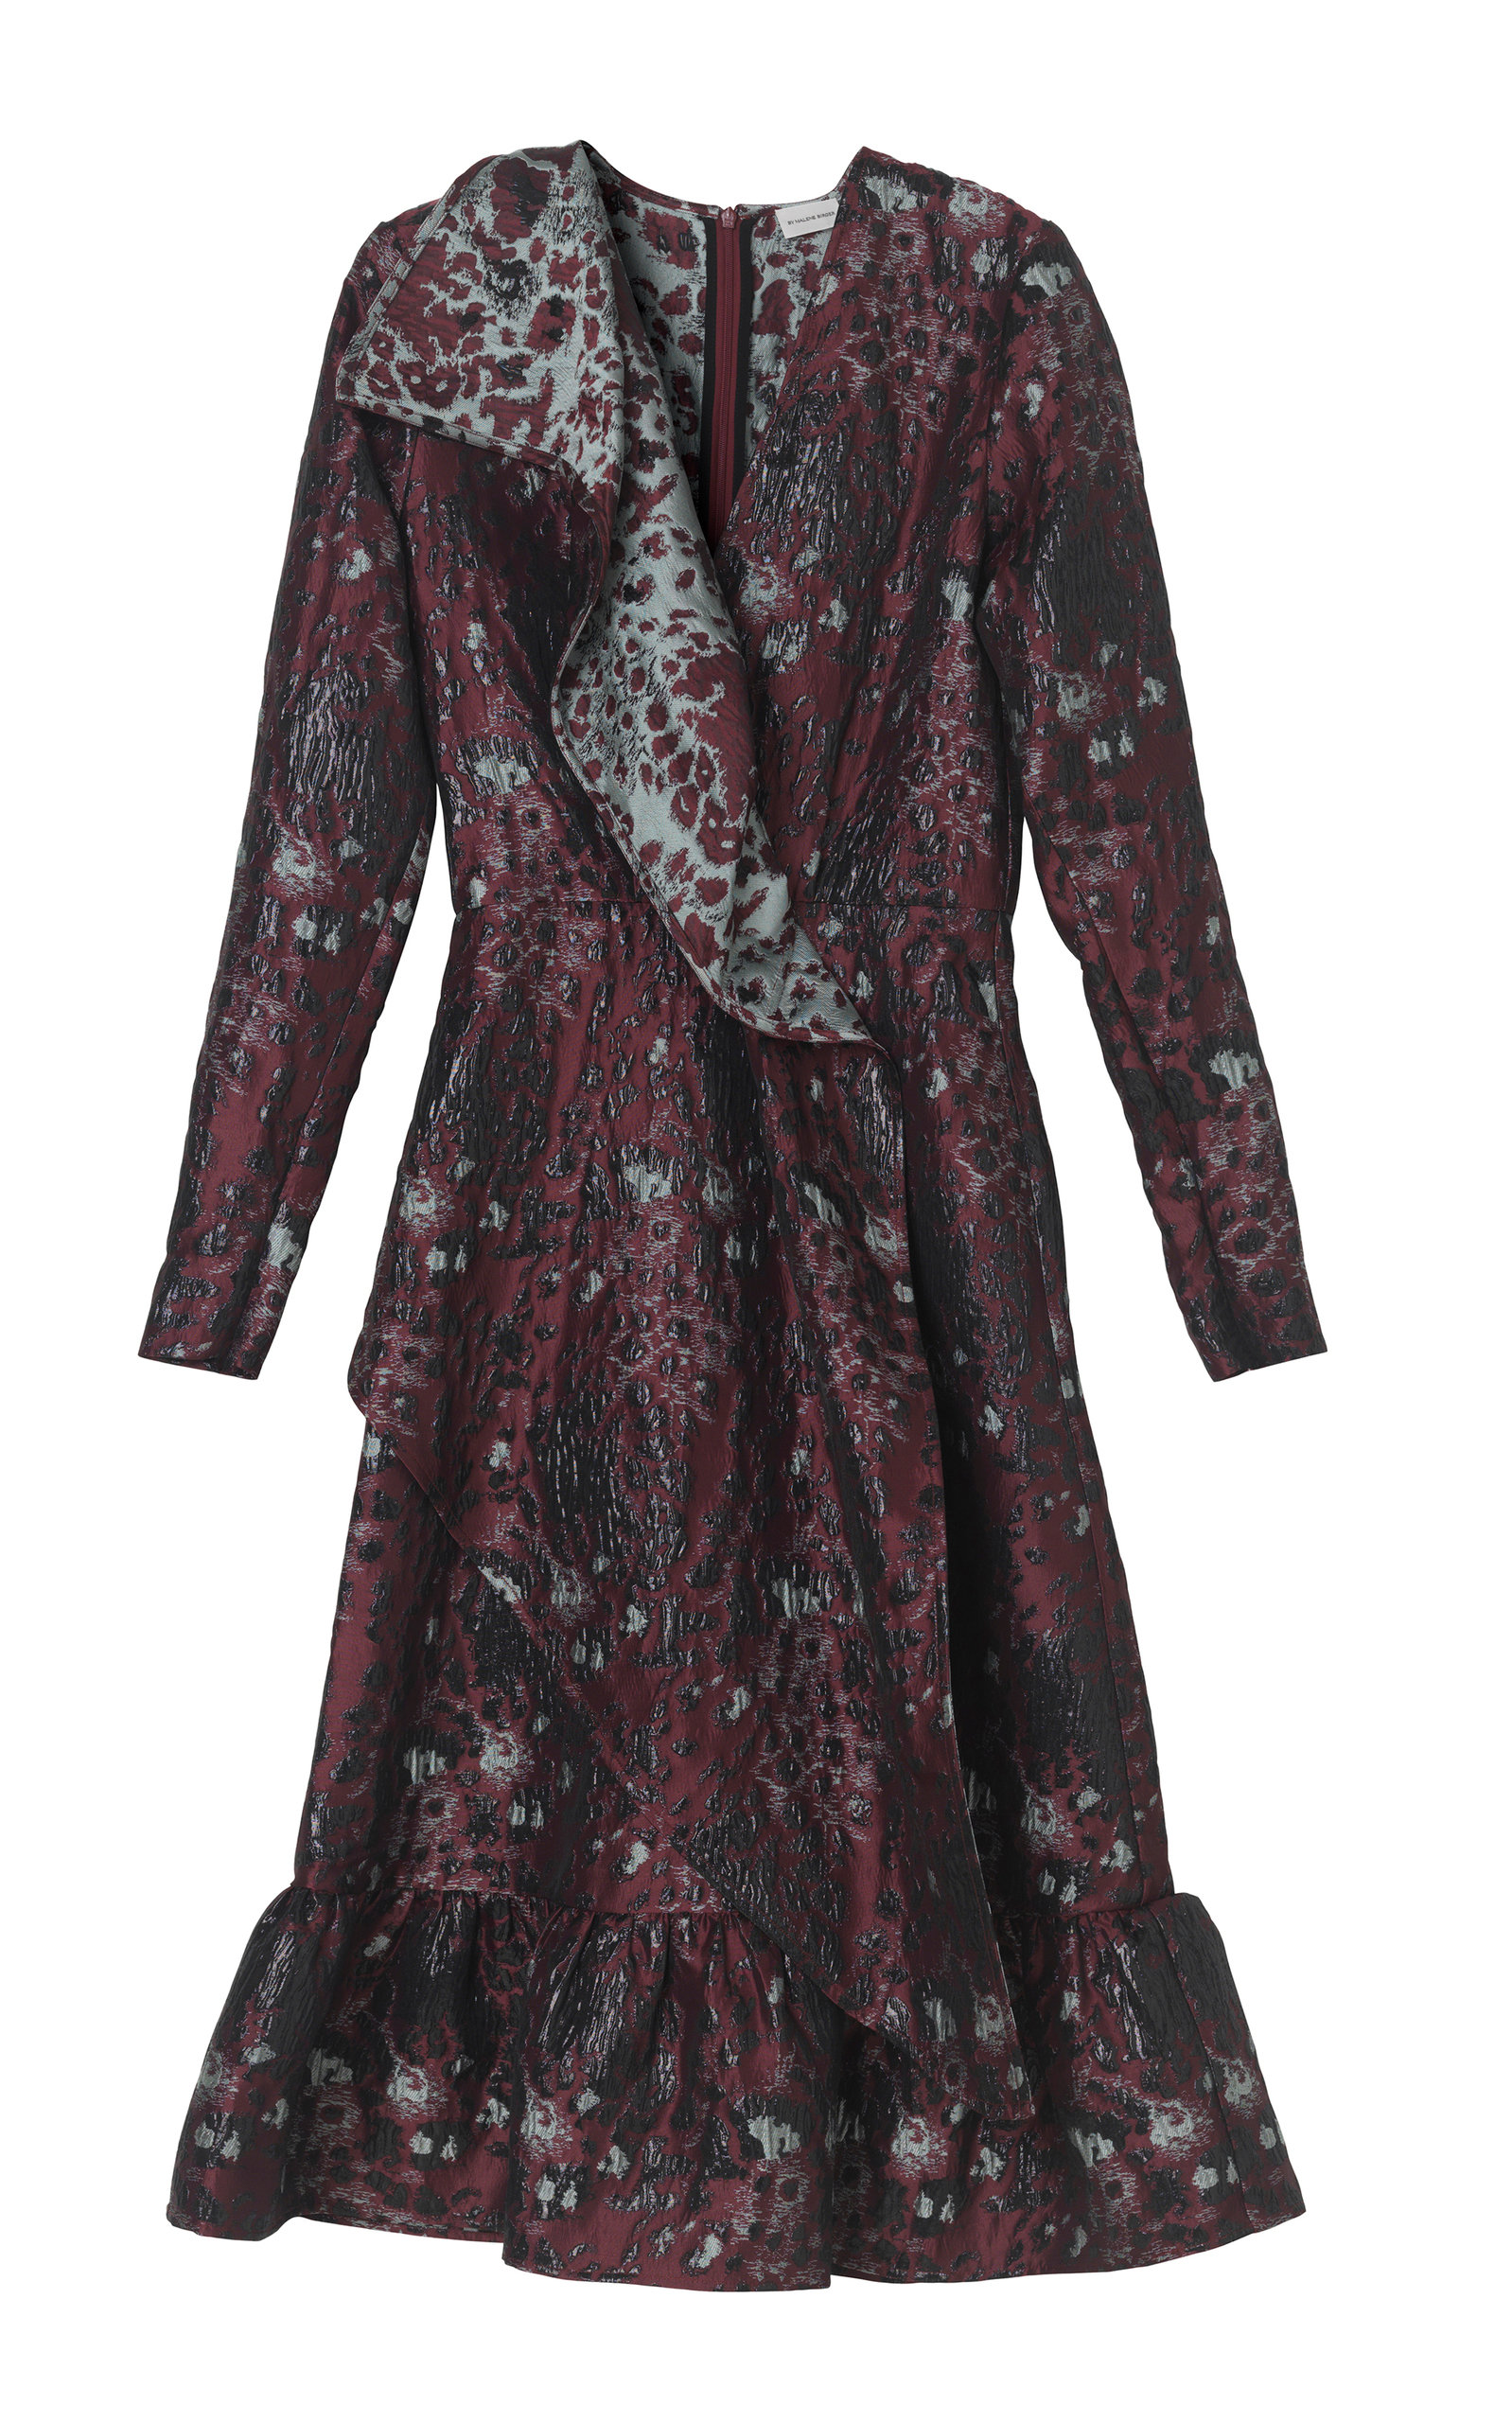 Buy By Malene Birger Lisieux Leopard Jacquard Dress online, shop By Malene Birger at the best price